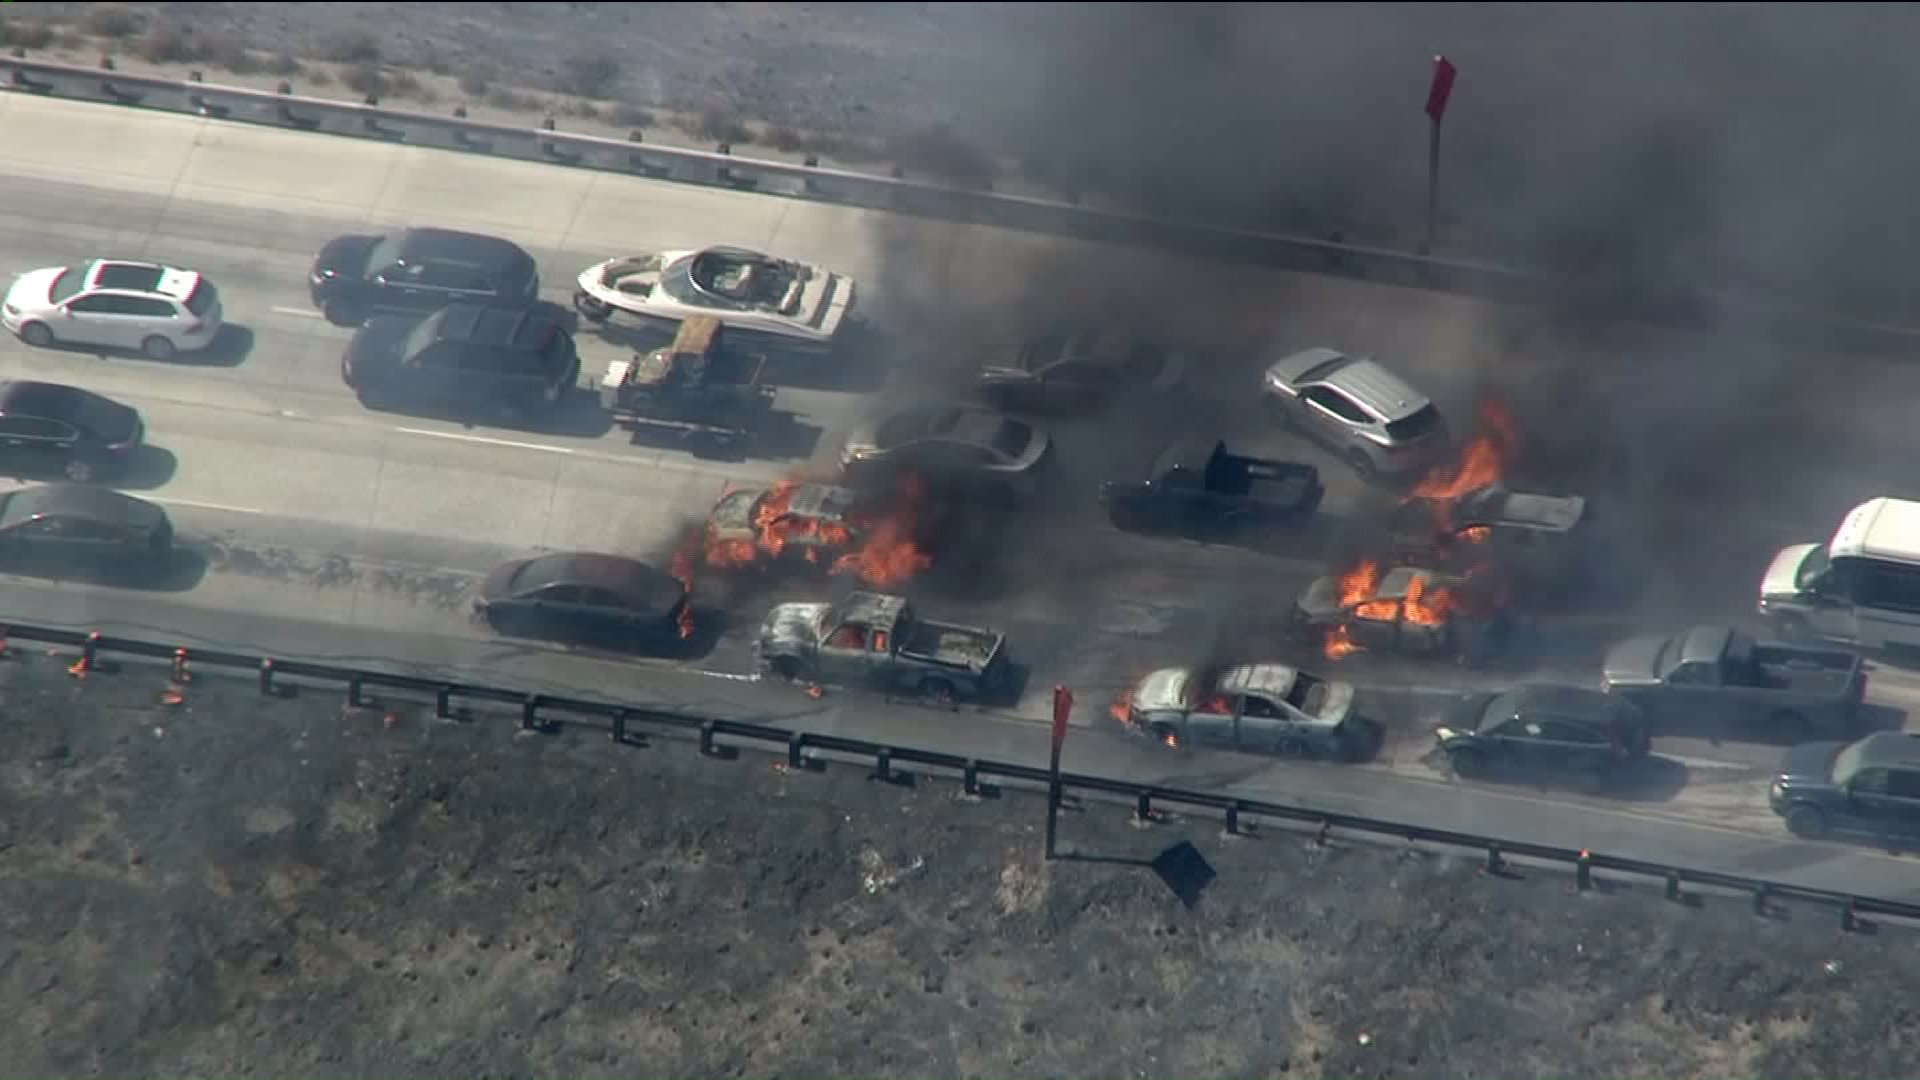 A rapid-moving wildfire on Friday, July 17, 2015, in the Cajon Pass spread from vegetation to vehicles stopped on the 15 Freeway. (Credit: KTLA)